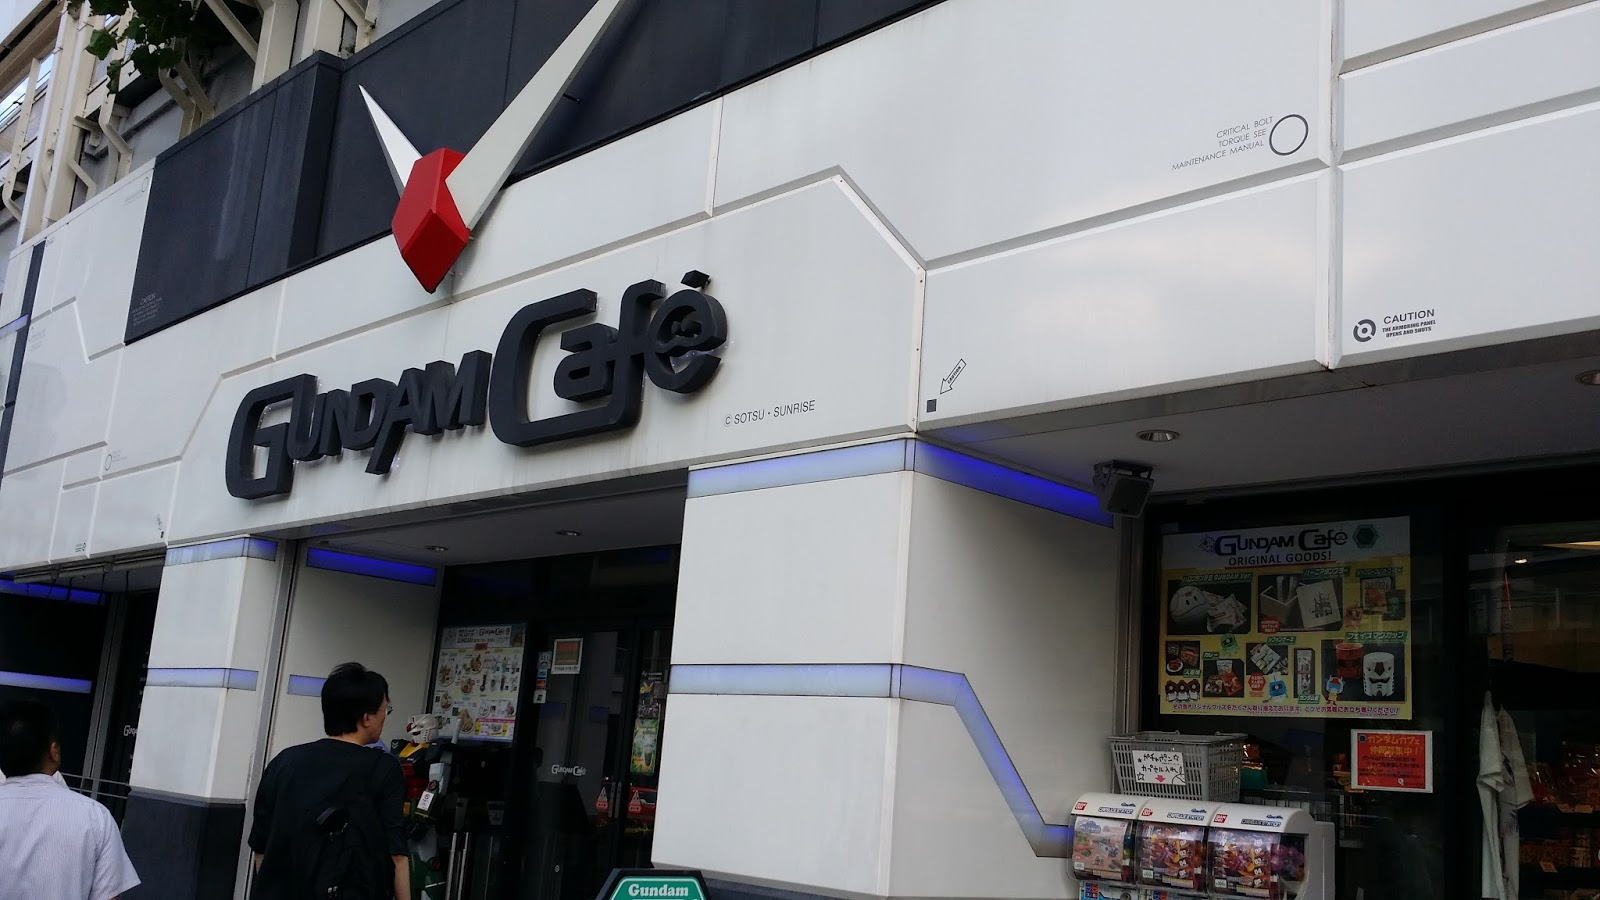 GEEKING OUT AGAIN @ GUNDAM CAFE - AKIHABARA